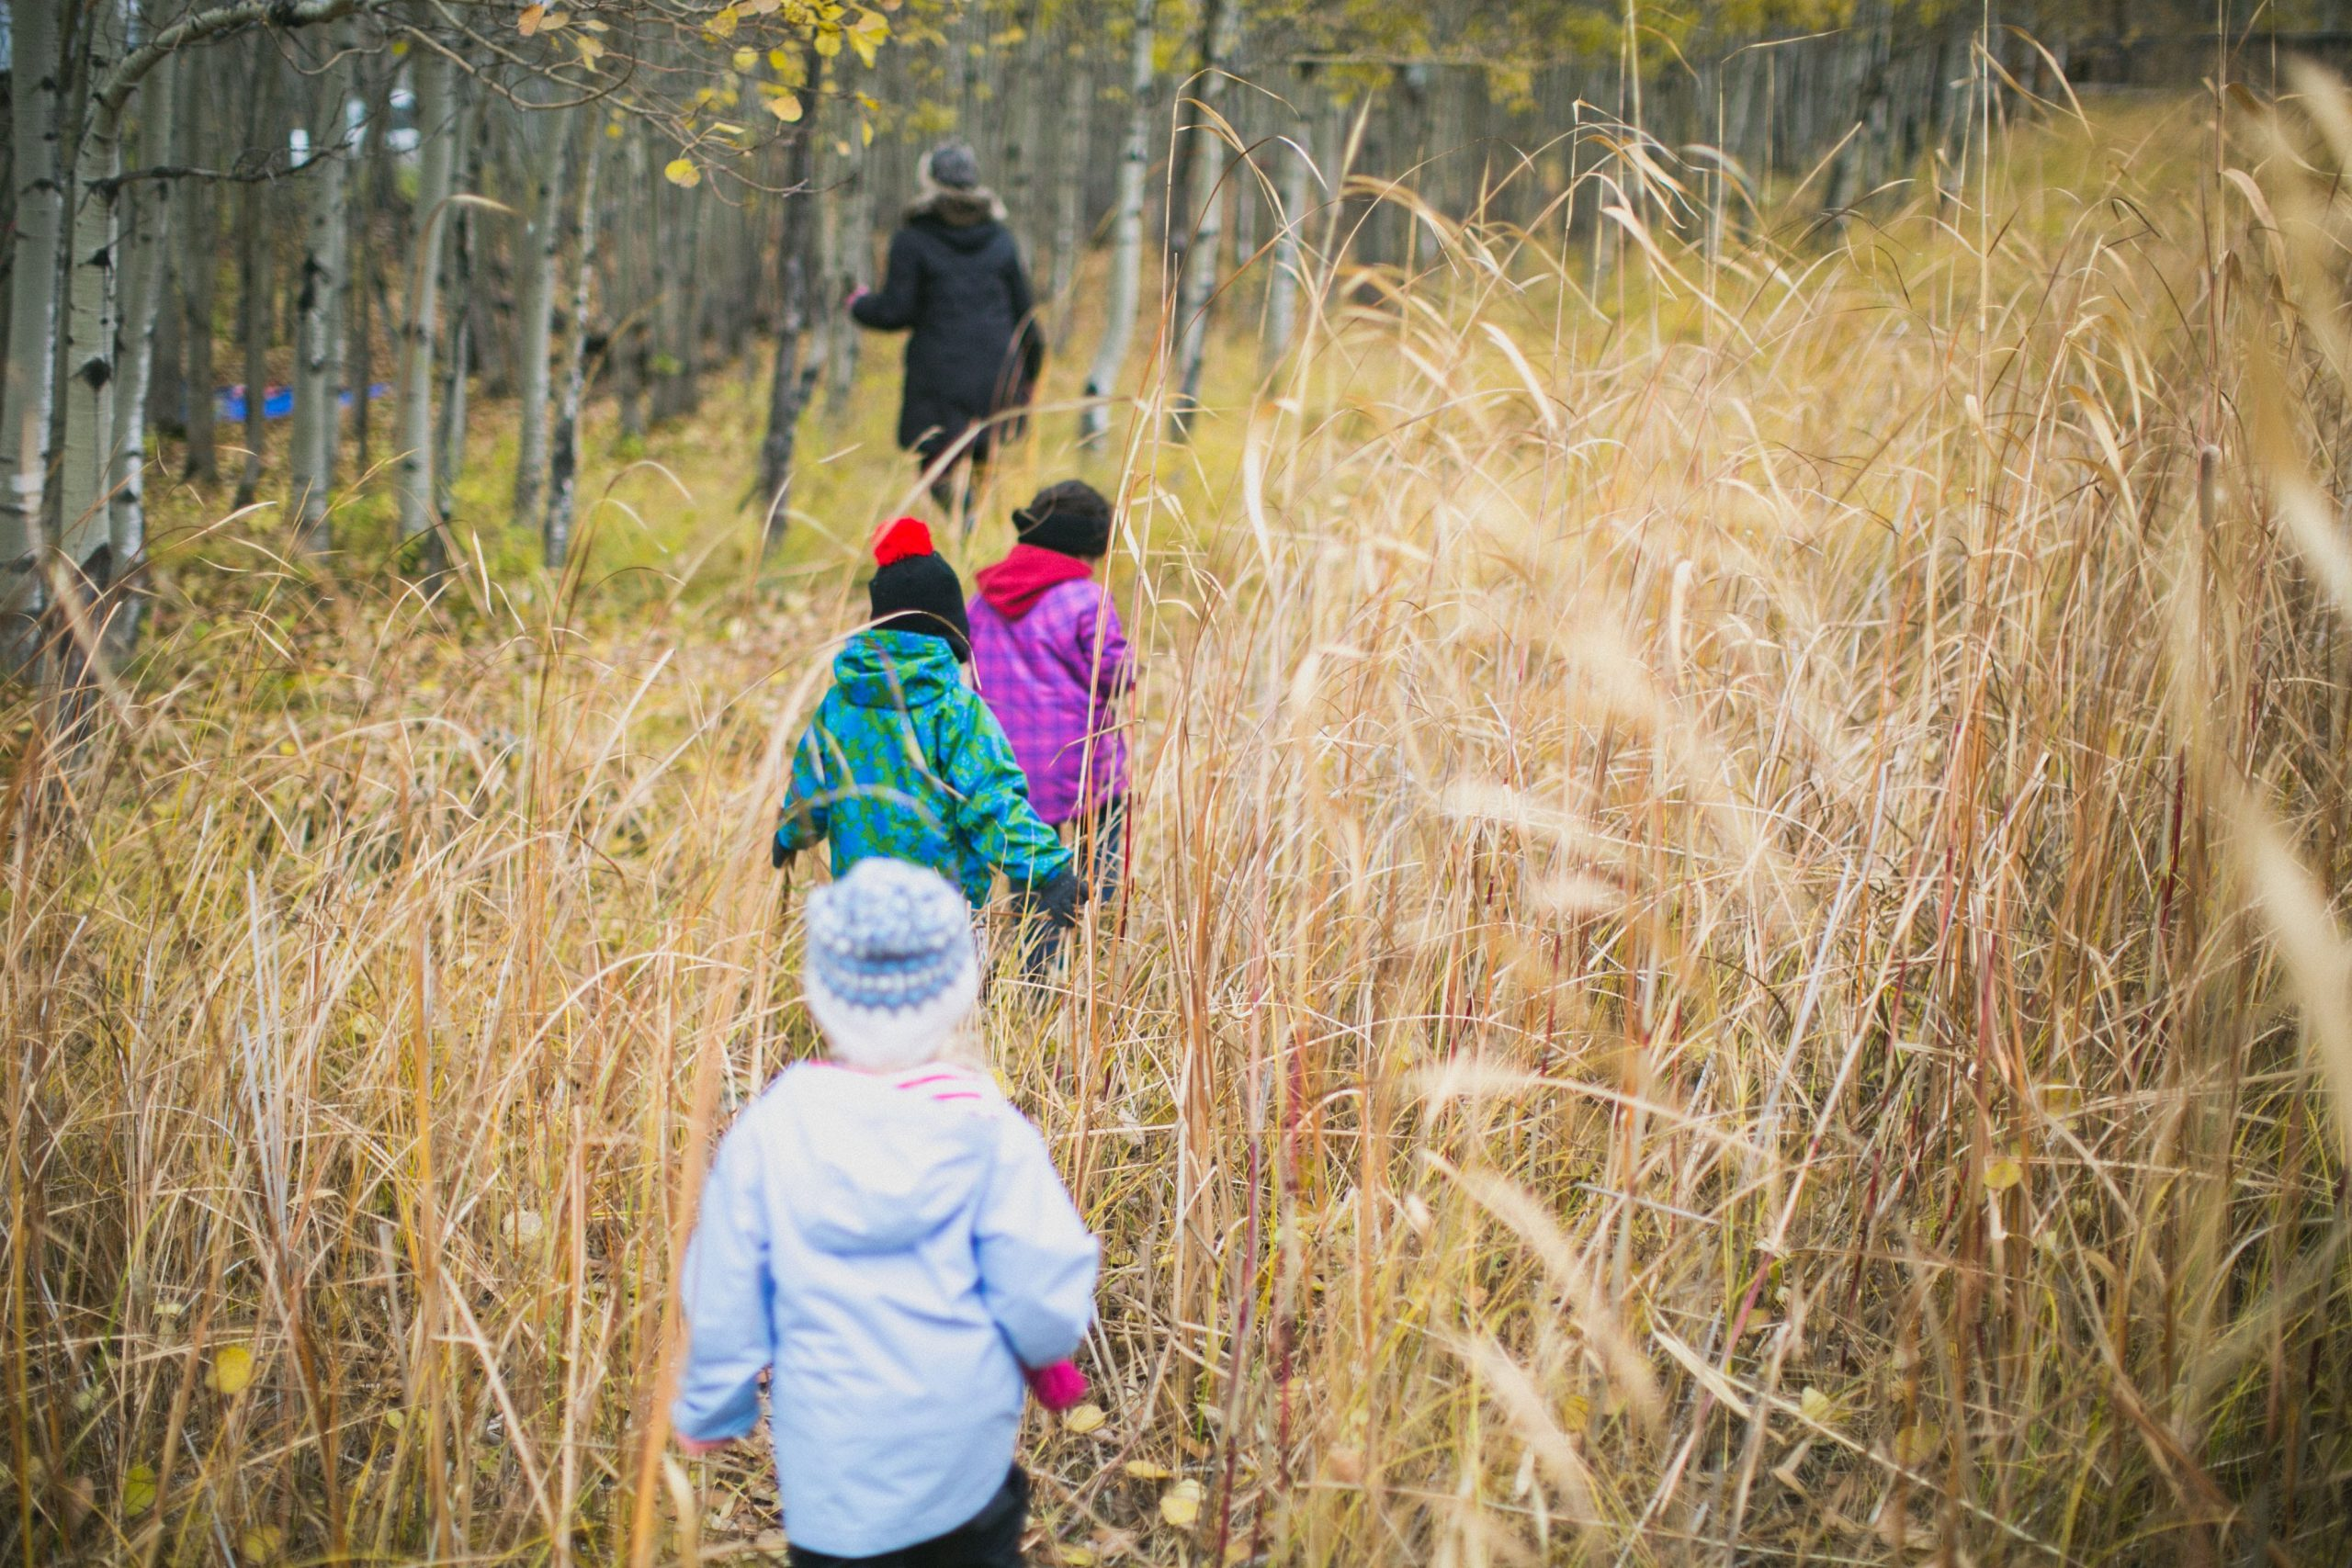 Children walk in a line between tall grass in autumn